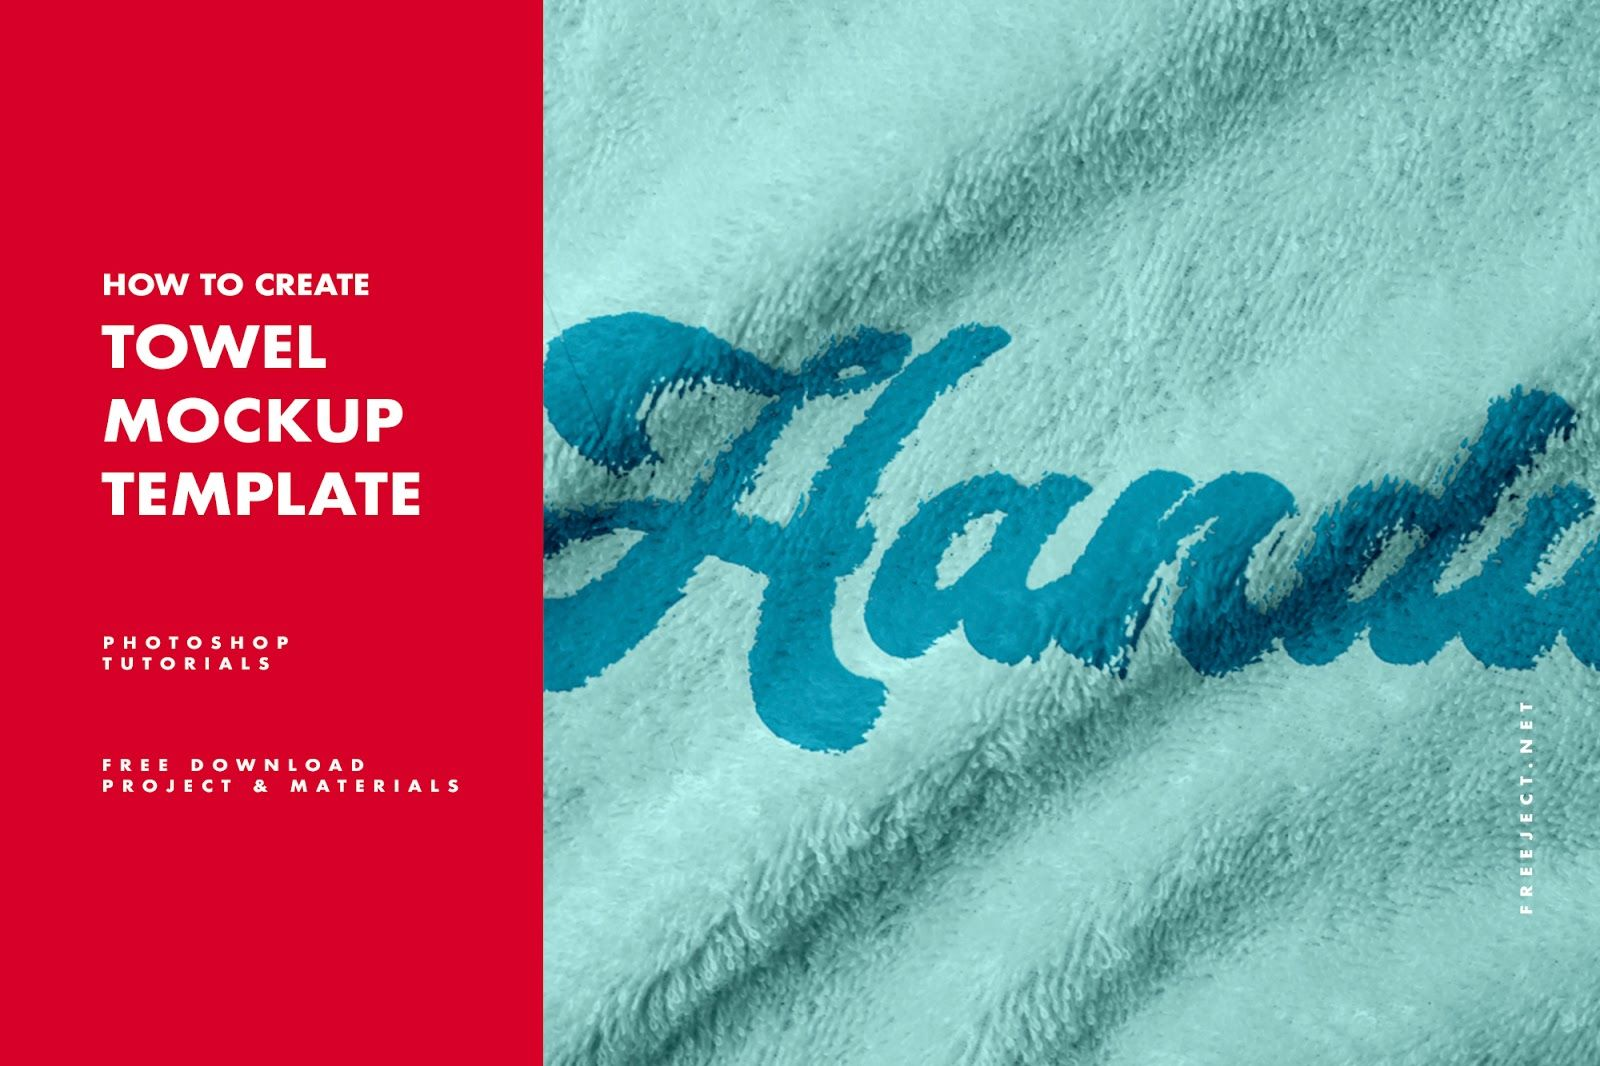 How To Create Towel Mockup In Photoshop Photoshop Tutorials Photoshop Tutorial Photoshop Texture Download